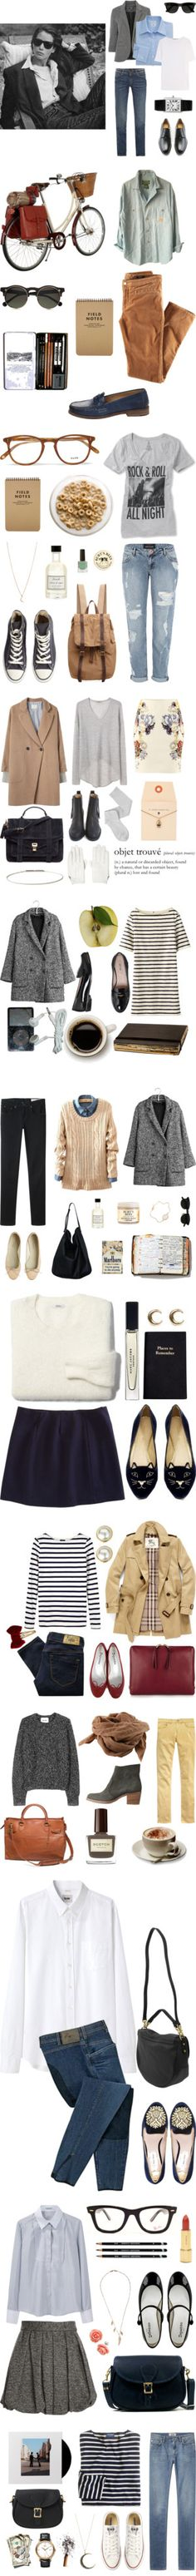 """College Wear"" by tealrhapsody on Polyvore"